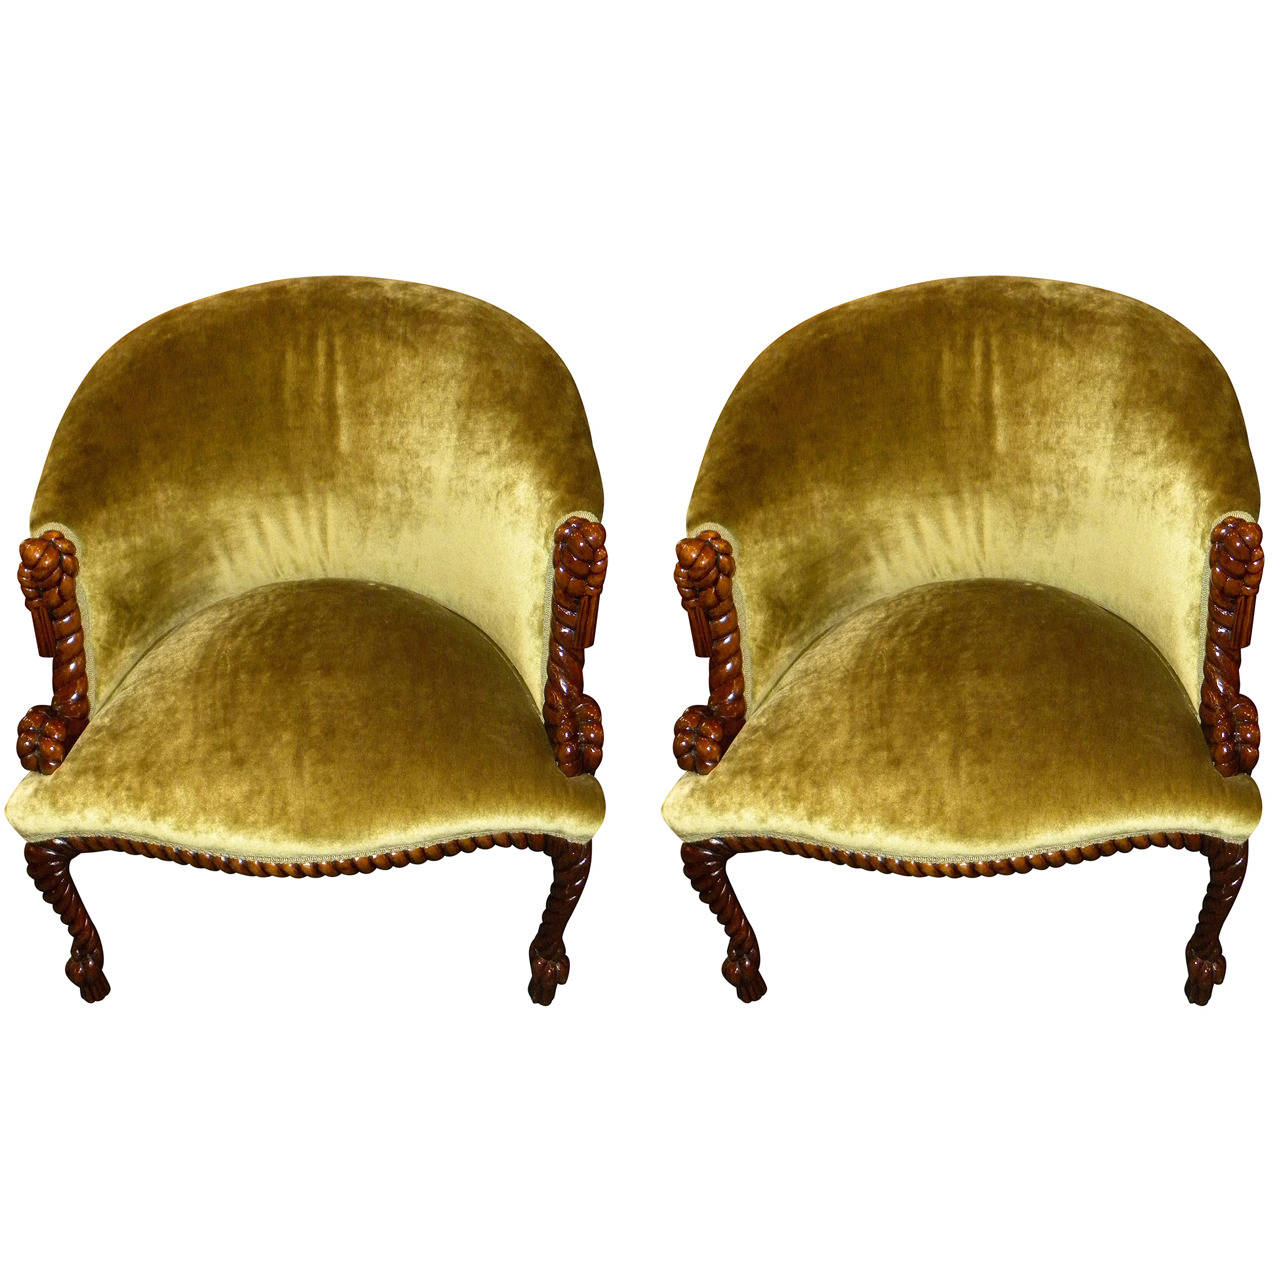 Art deco vintage leather sofa armchair - Unusual French Carved Wood Art Deco Armchairs